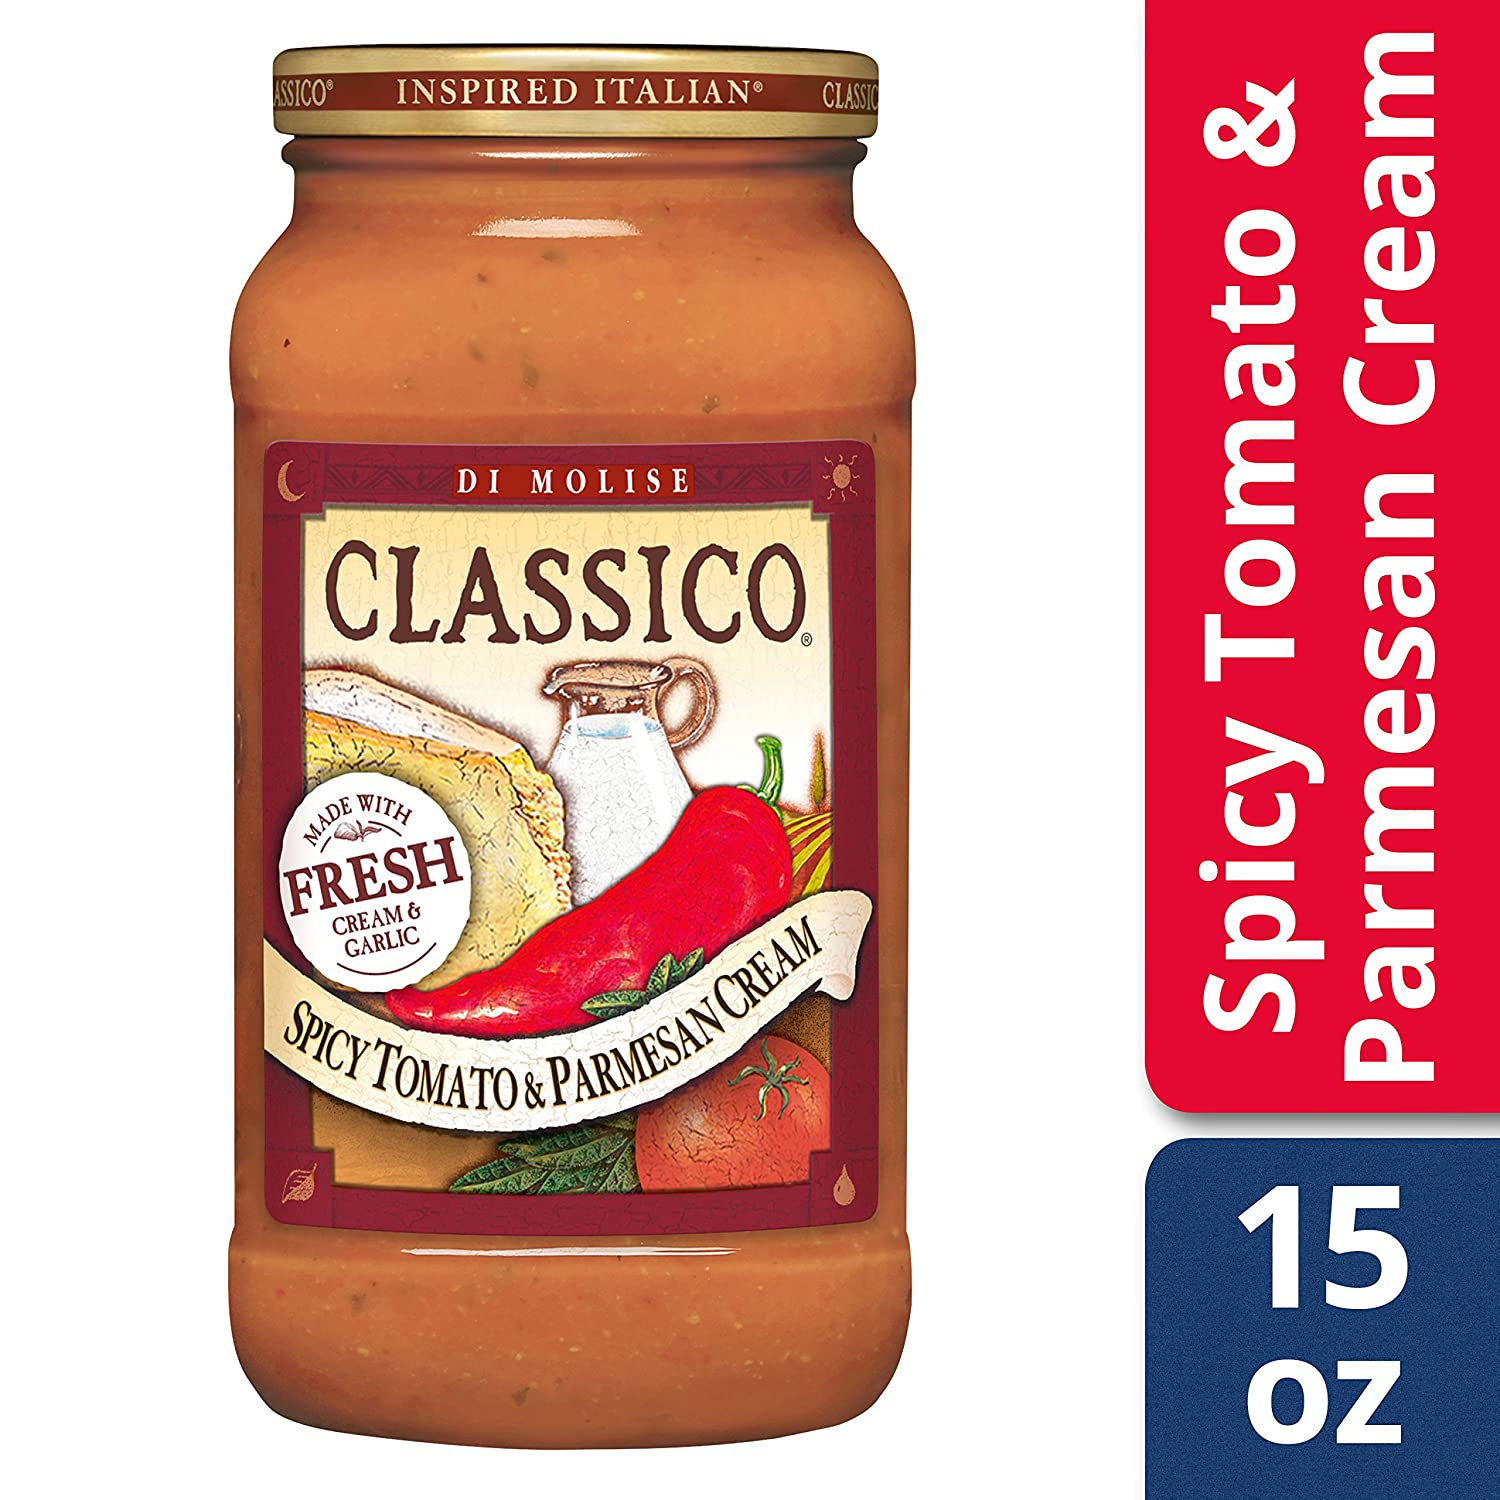 Amazon.com : Classico Spicy Tomato and Parmesan Cream Sauce, 15 oz : Grocery & Gourmet Food